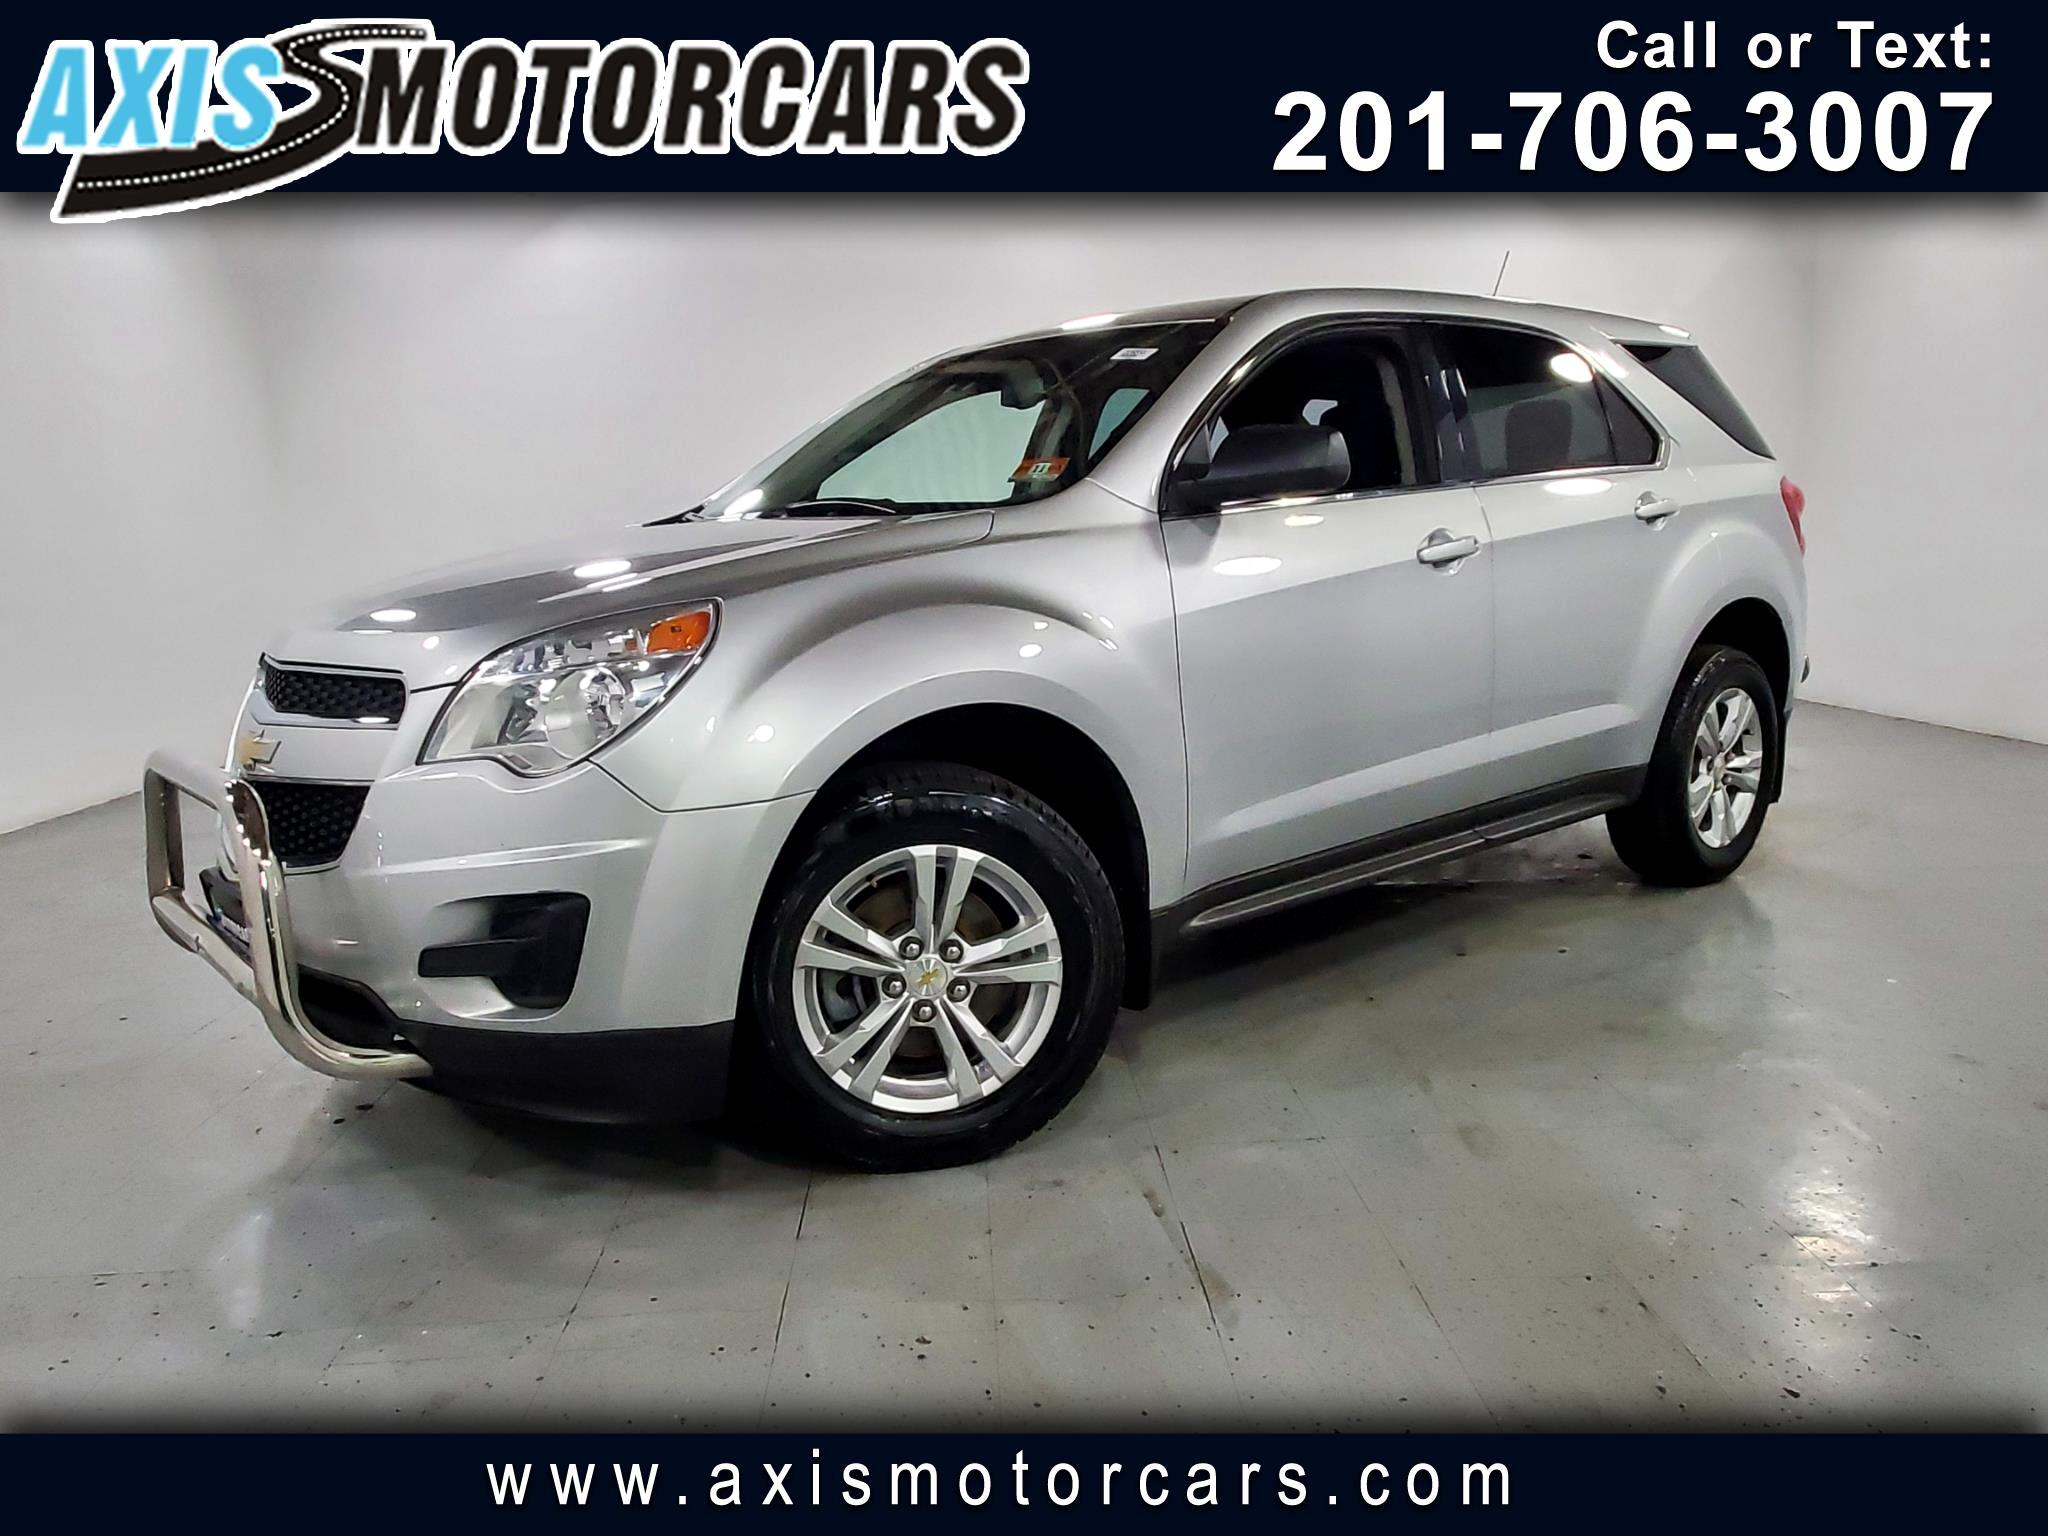 2012 Chevrolet Equinox LS w/Panoramic Roof